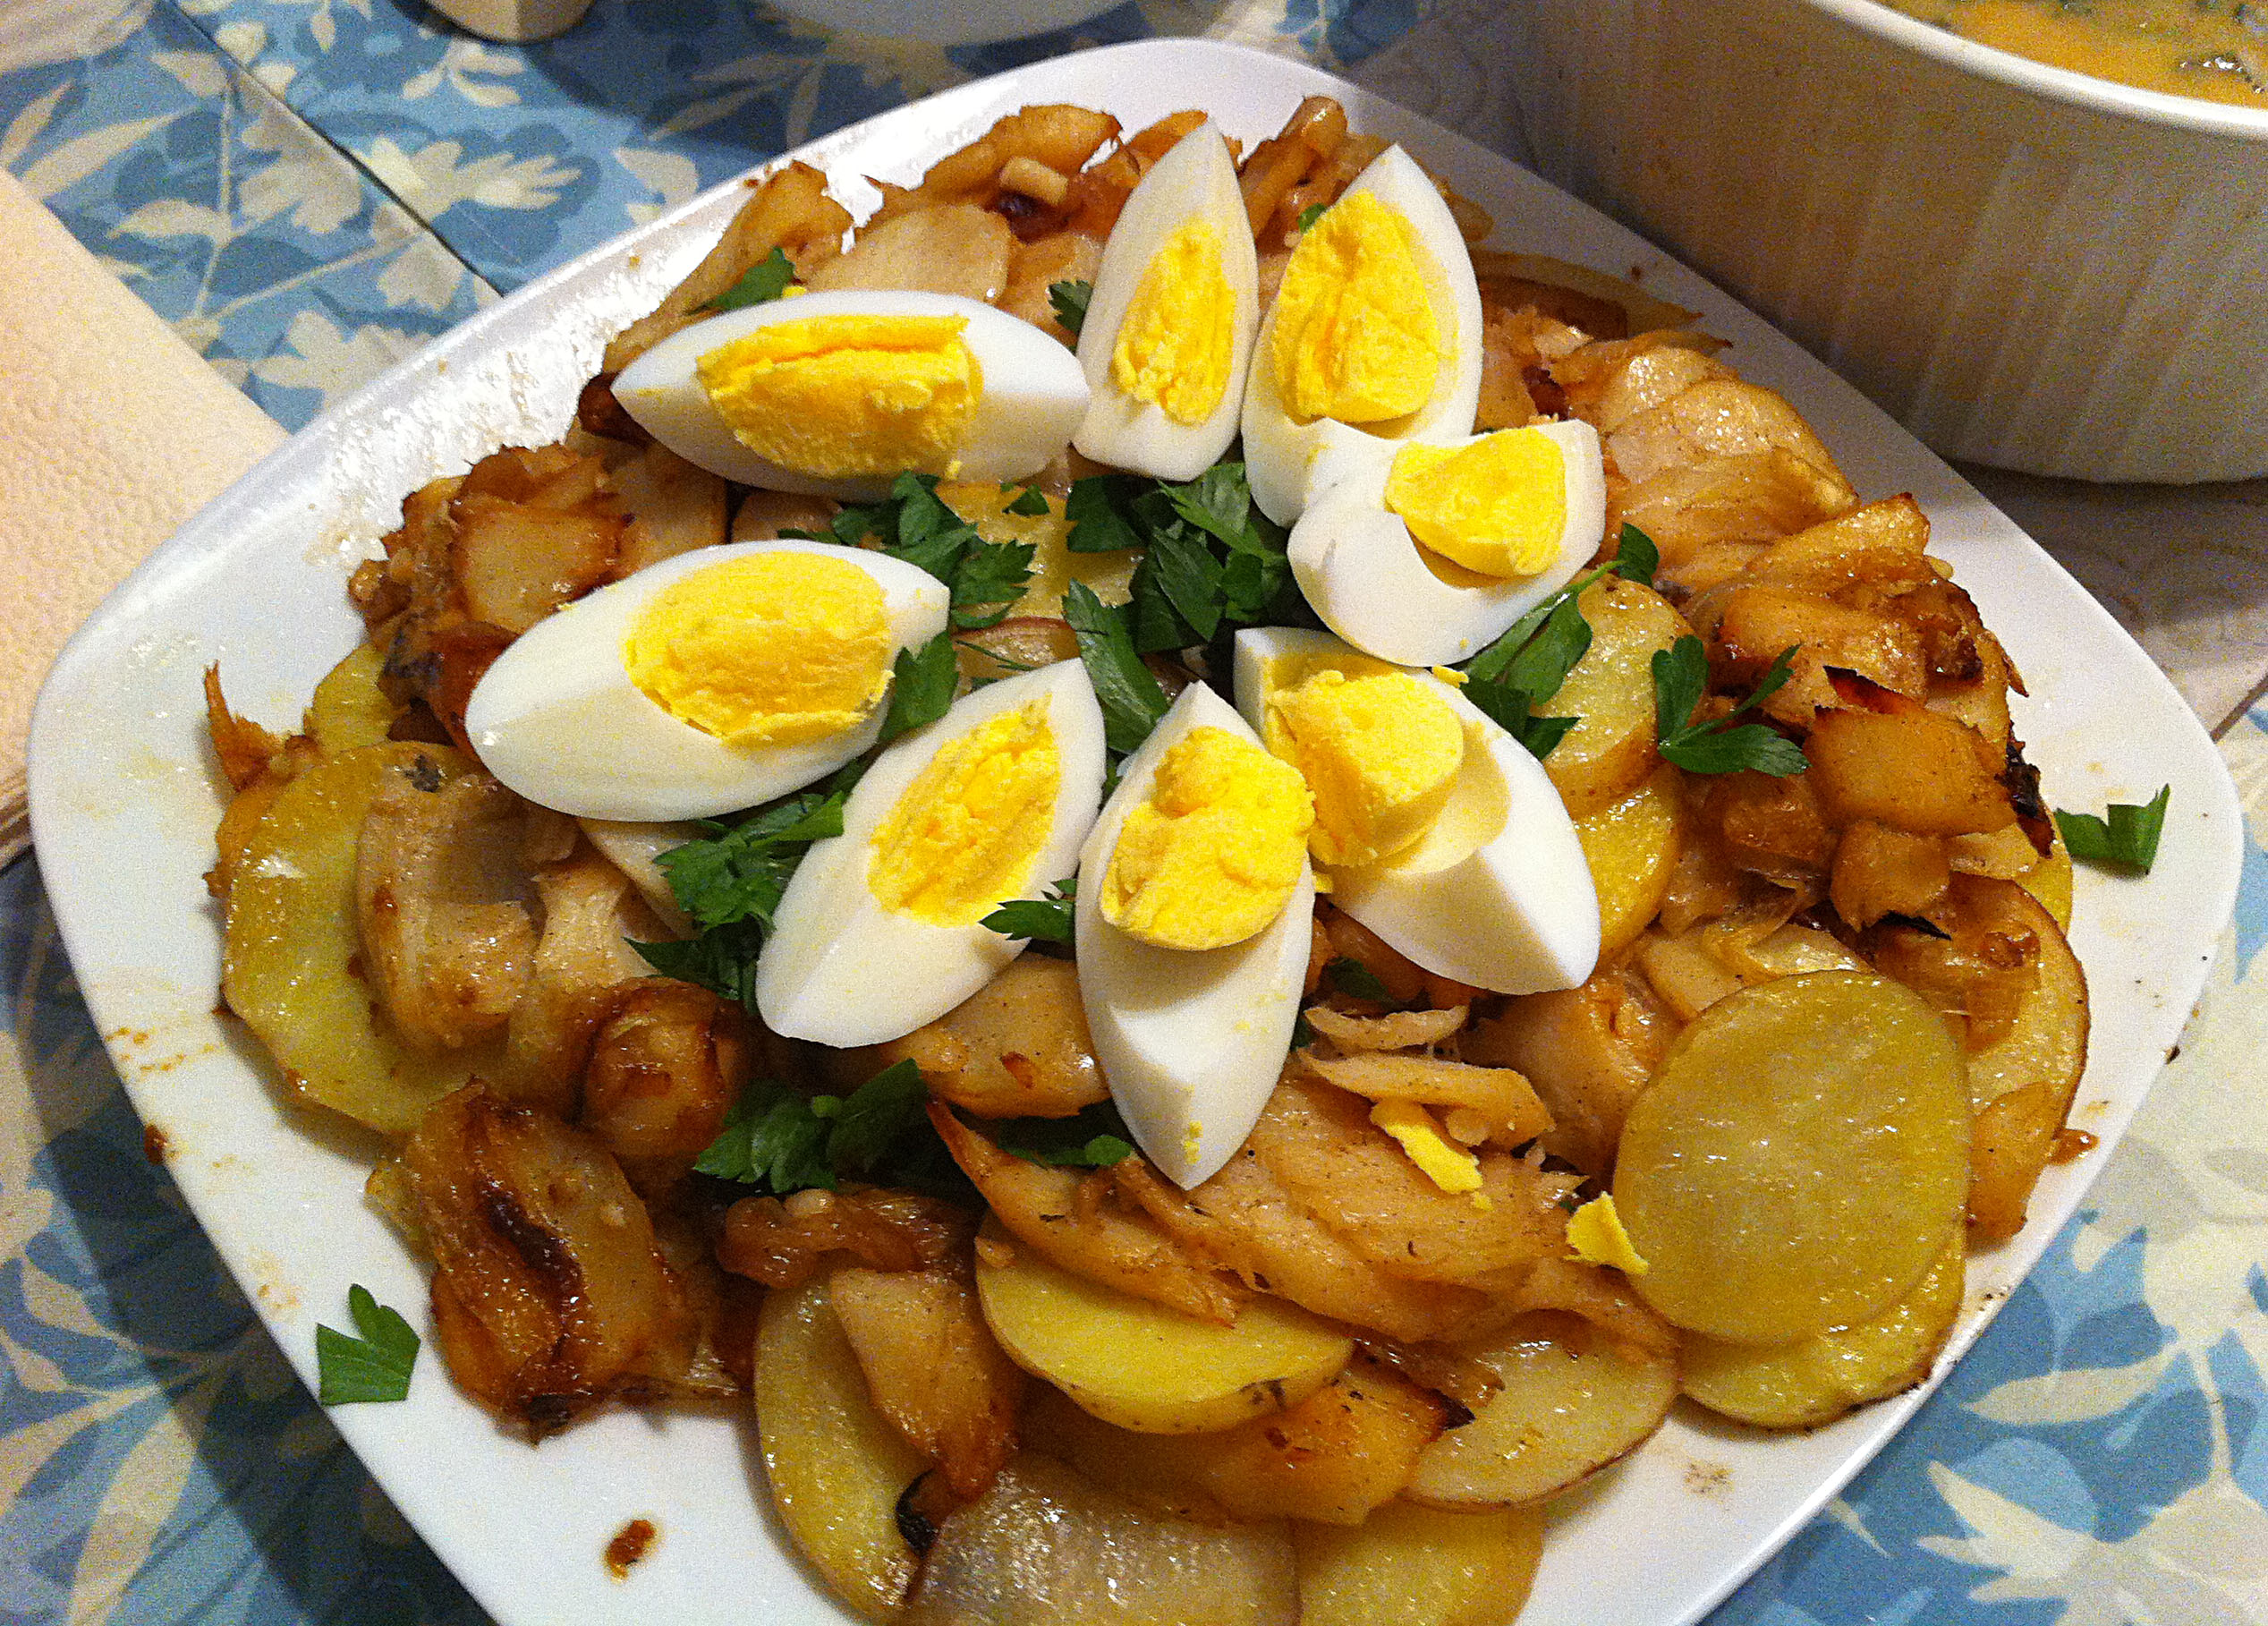 ... salt potato casserole portuguese salted cod egg and potato baked